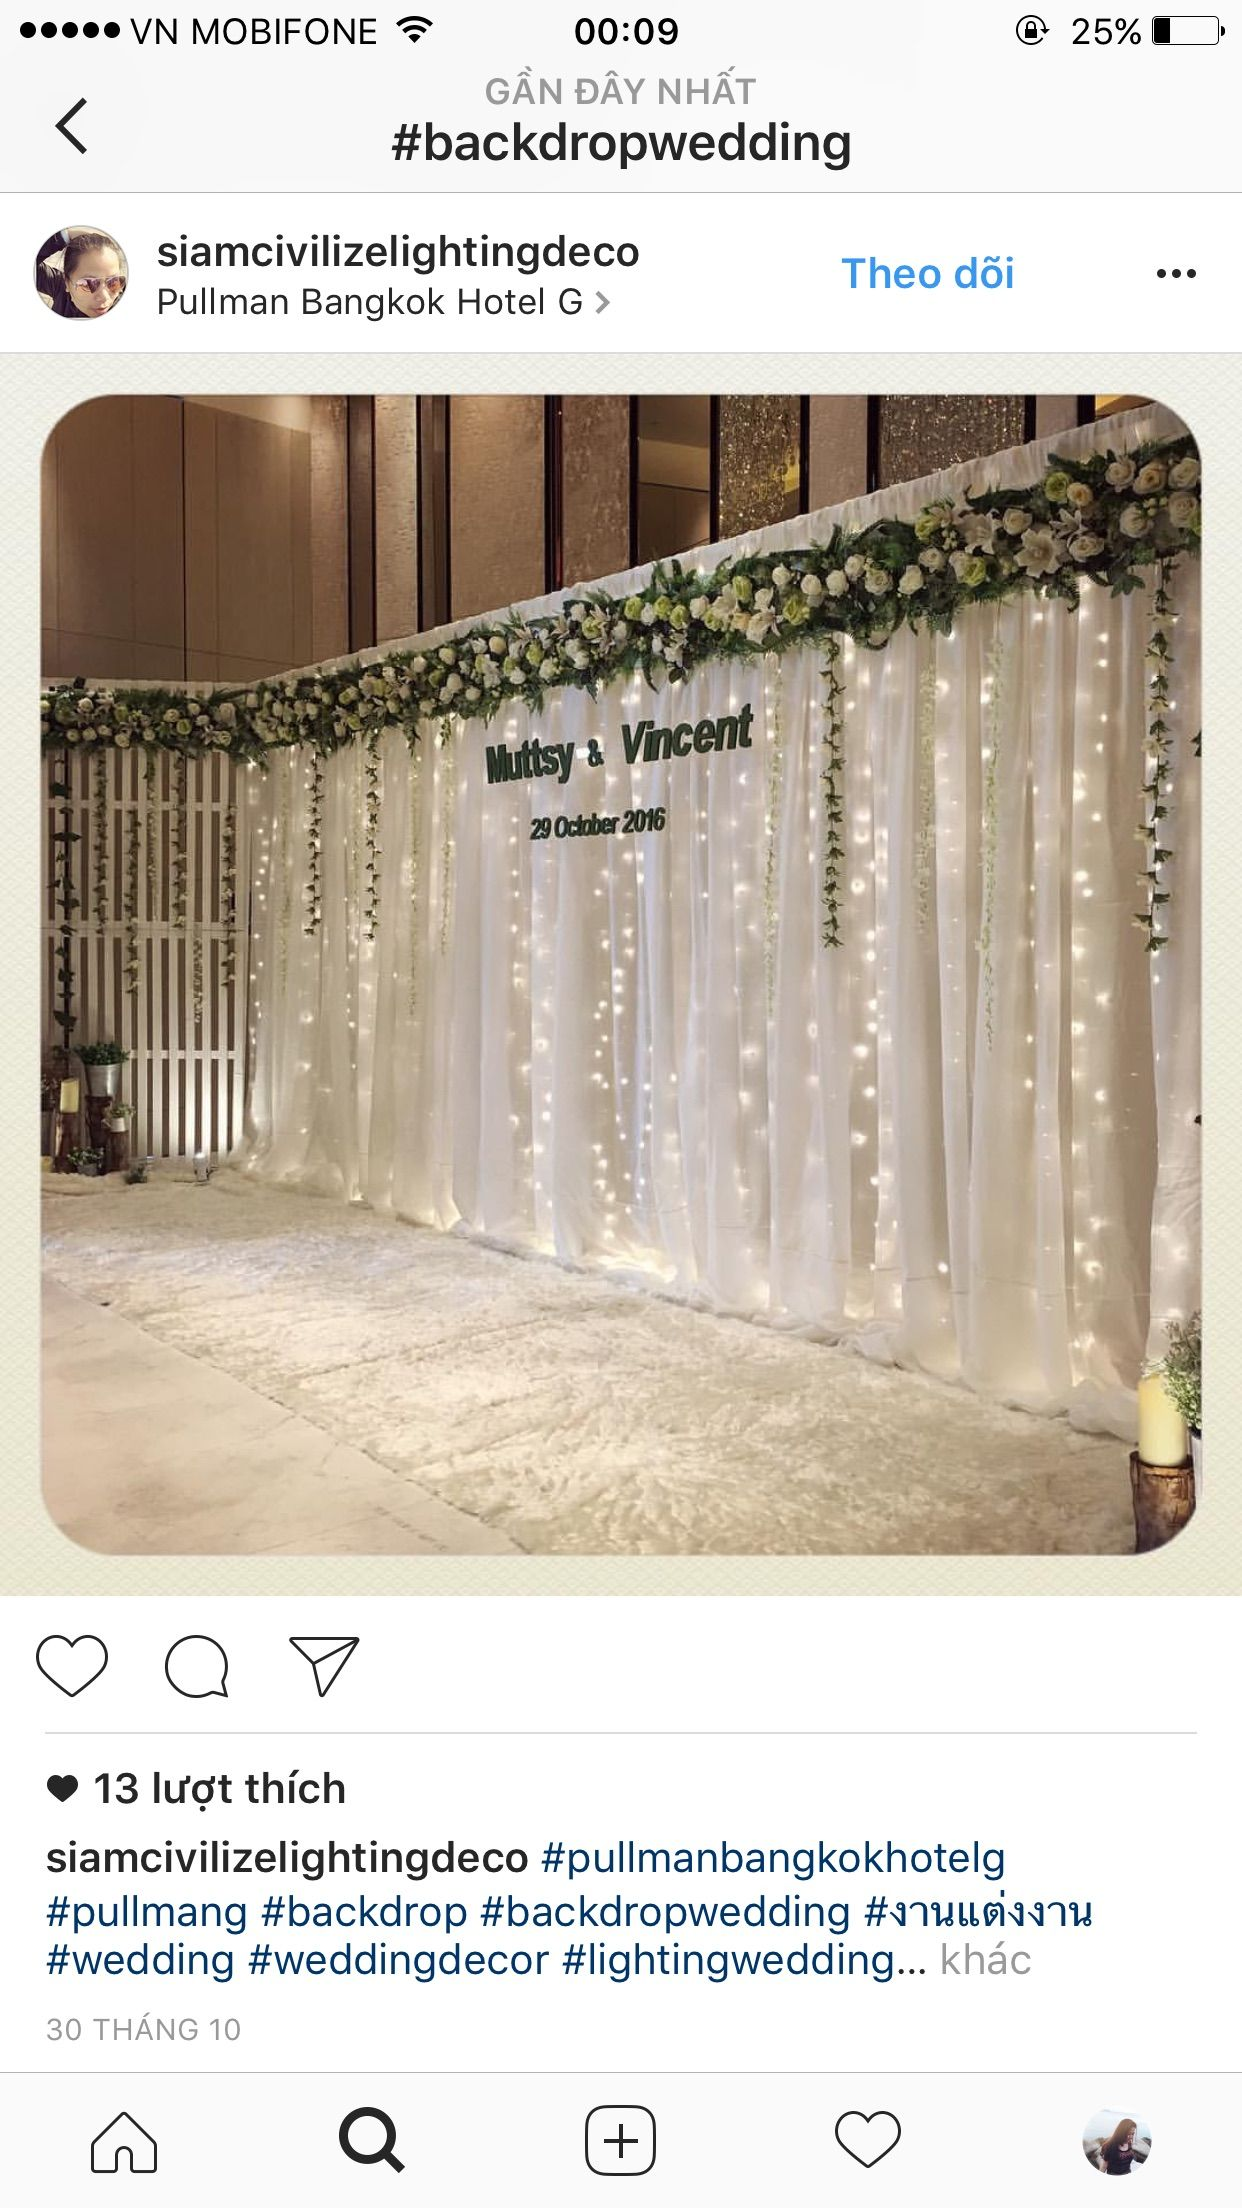 Wedding decorations stage backdrops october 2018 Background ưedding   Bricolaje y manualidades  Pinterest